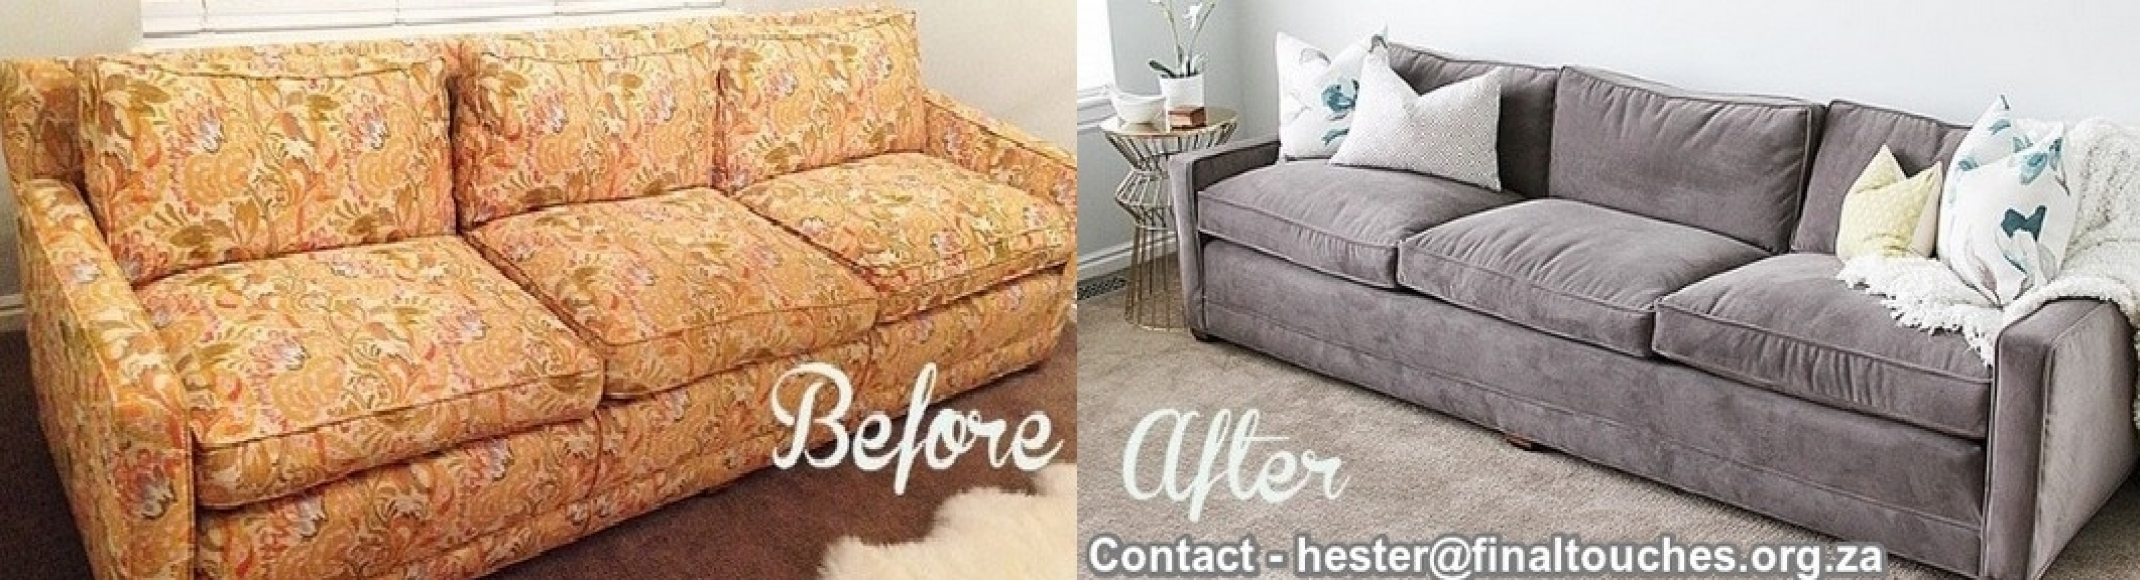 www.finaltouches.org.za-upholstery-couch before & after